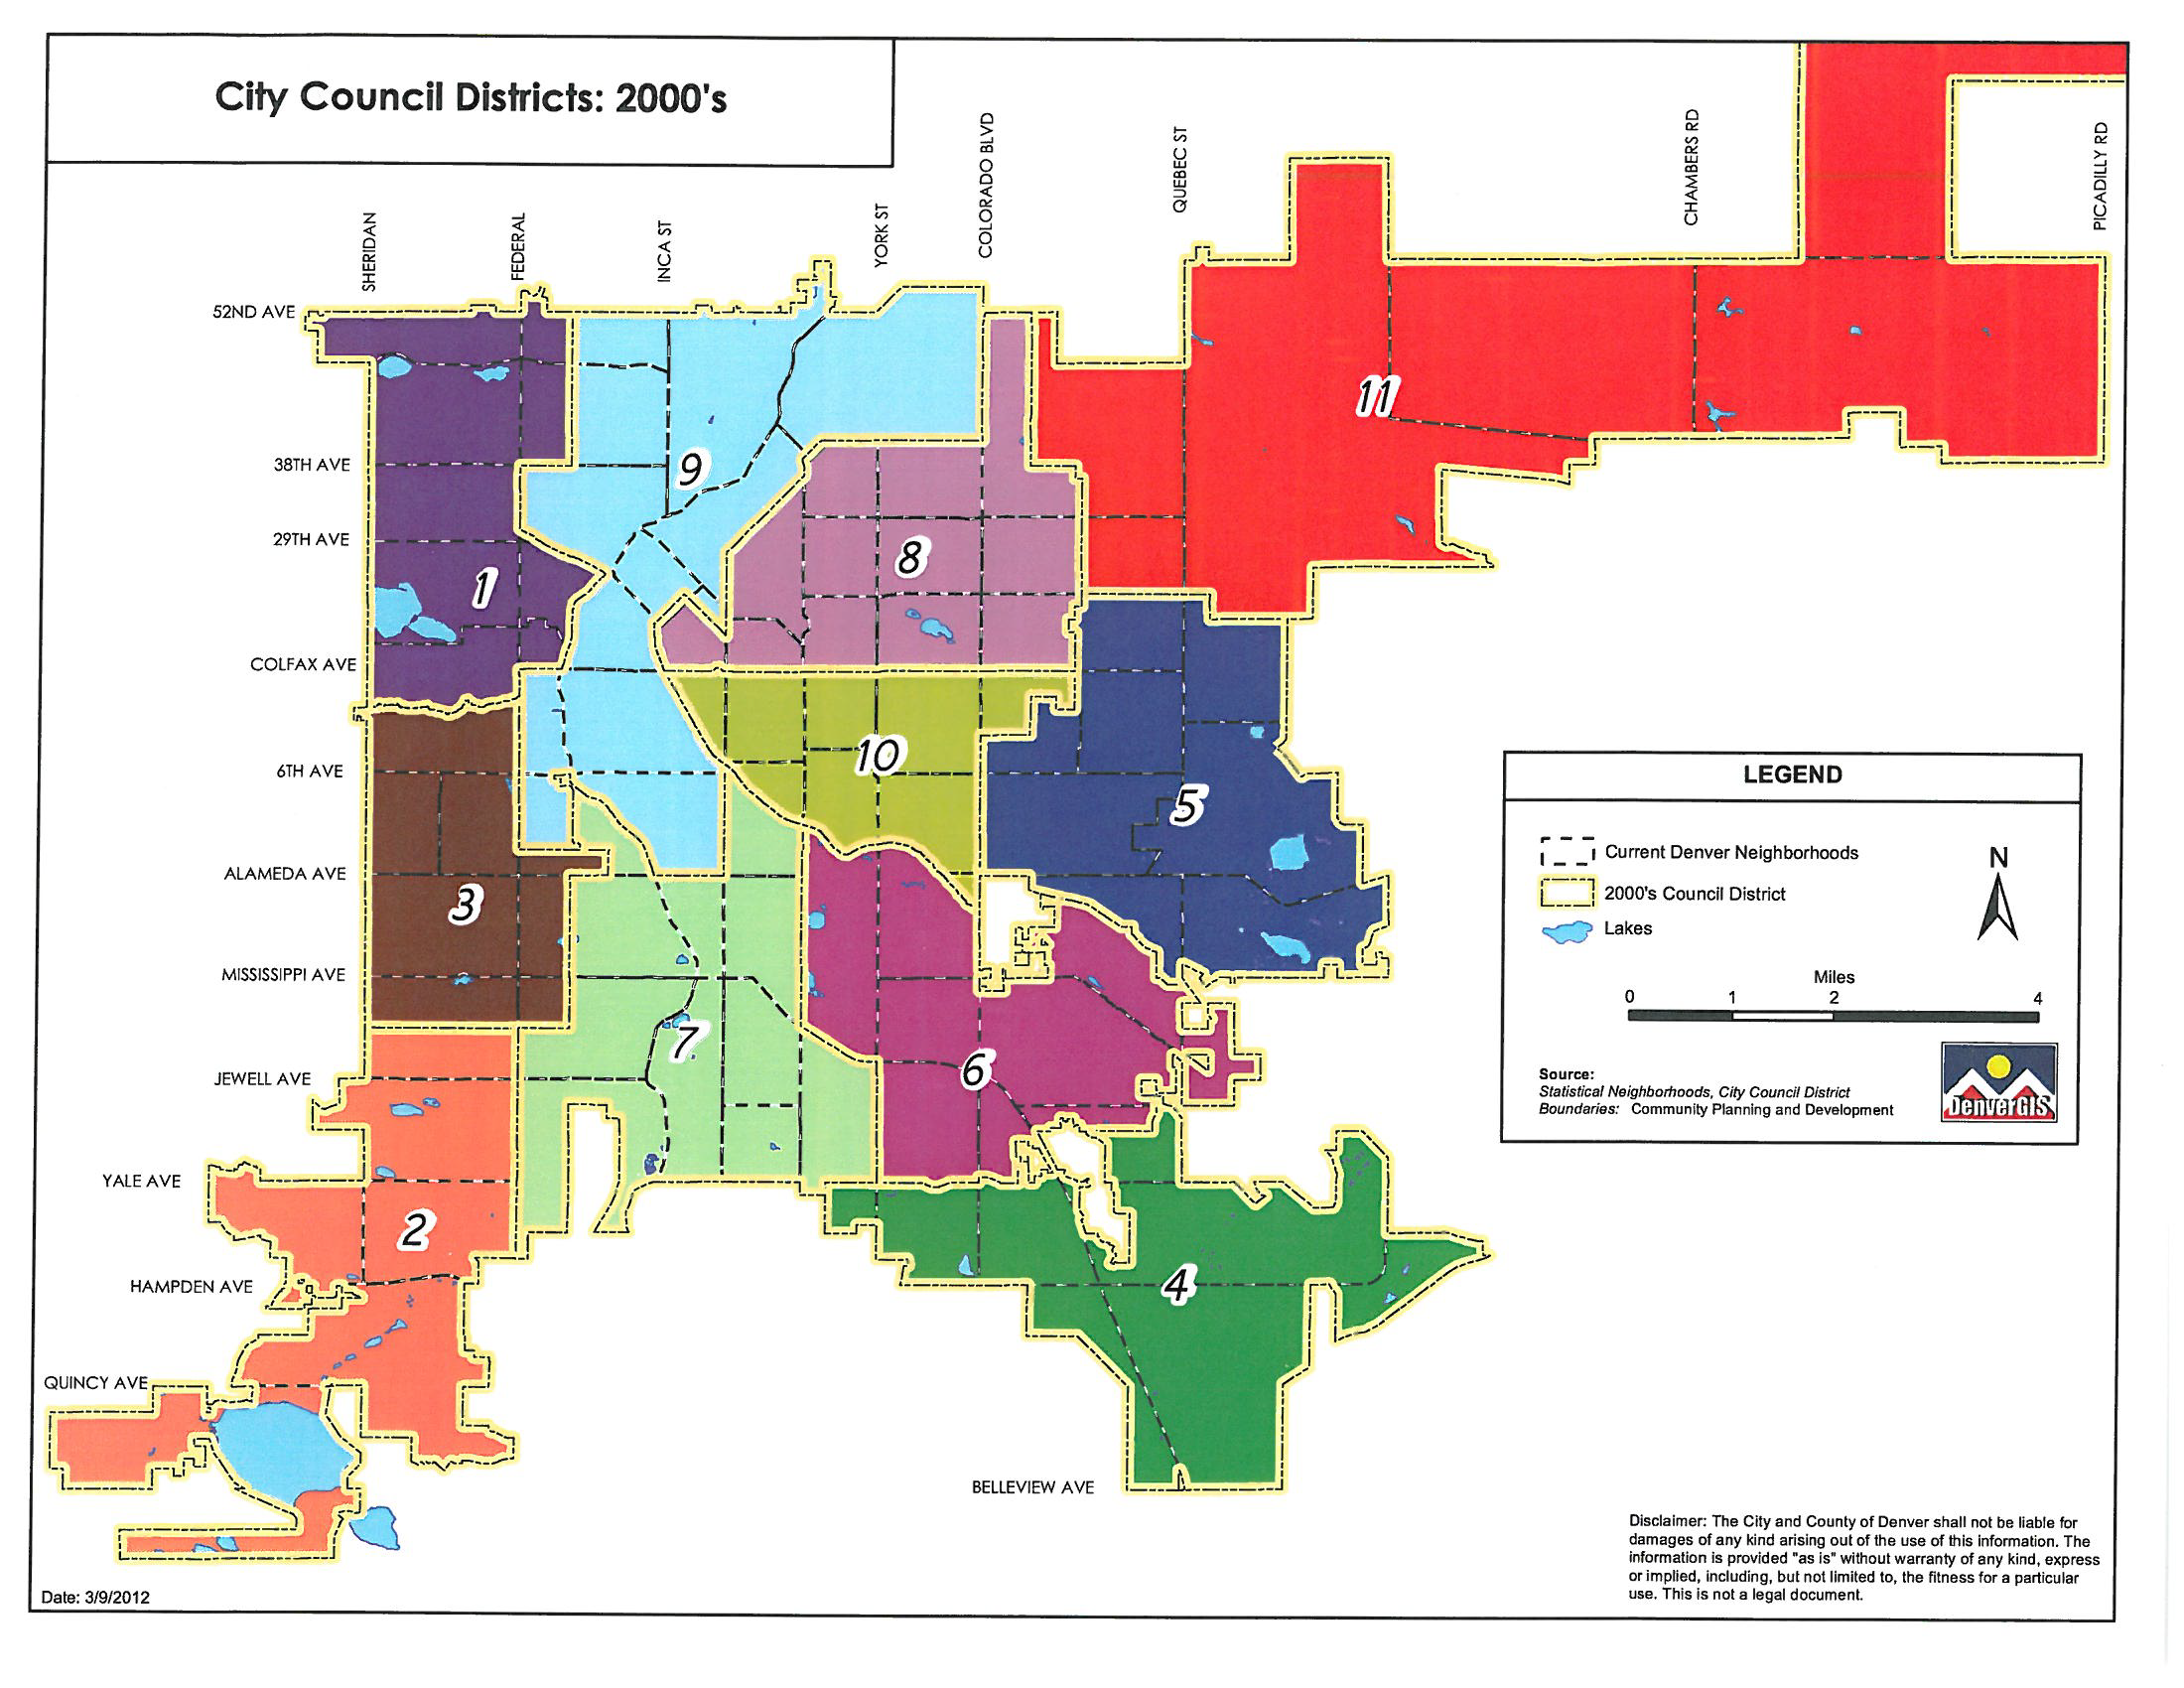 2000's Denver council districts map